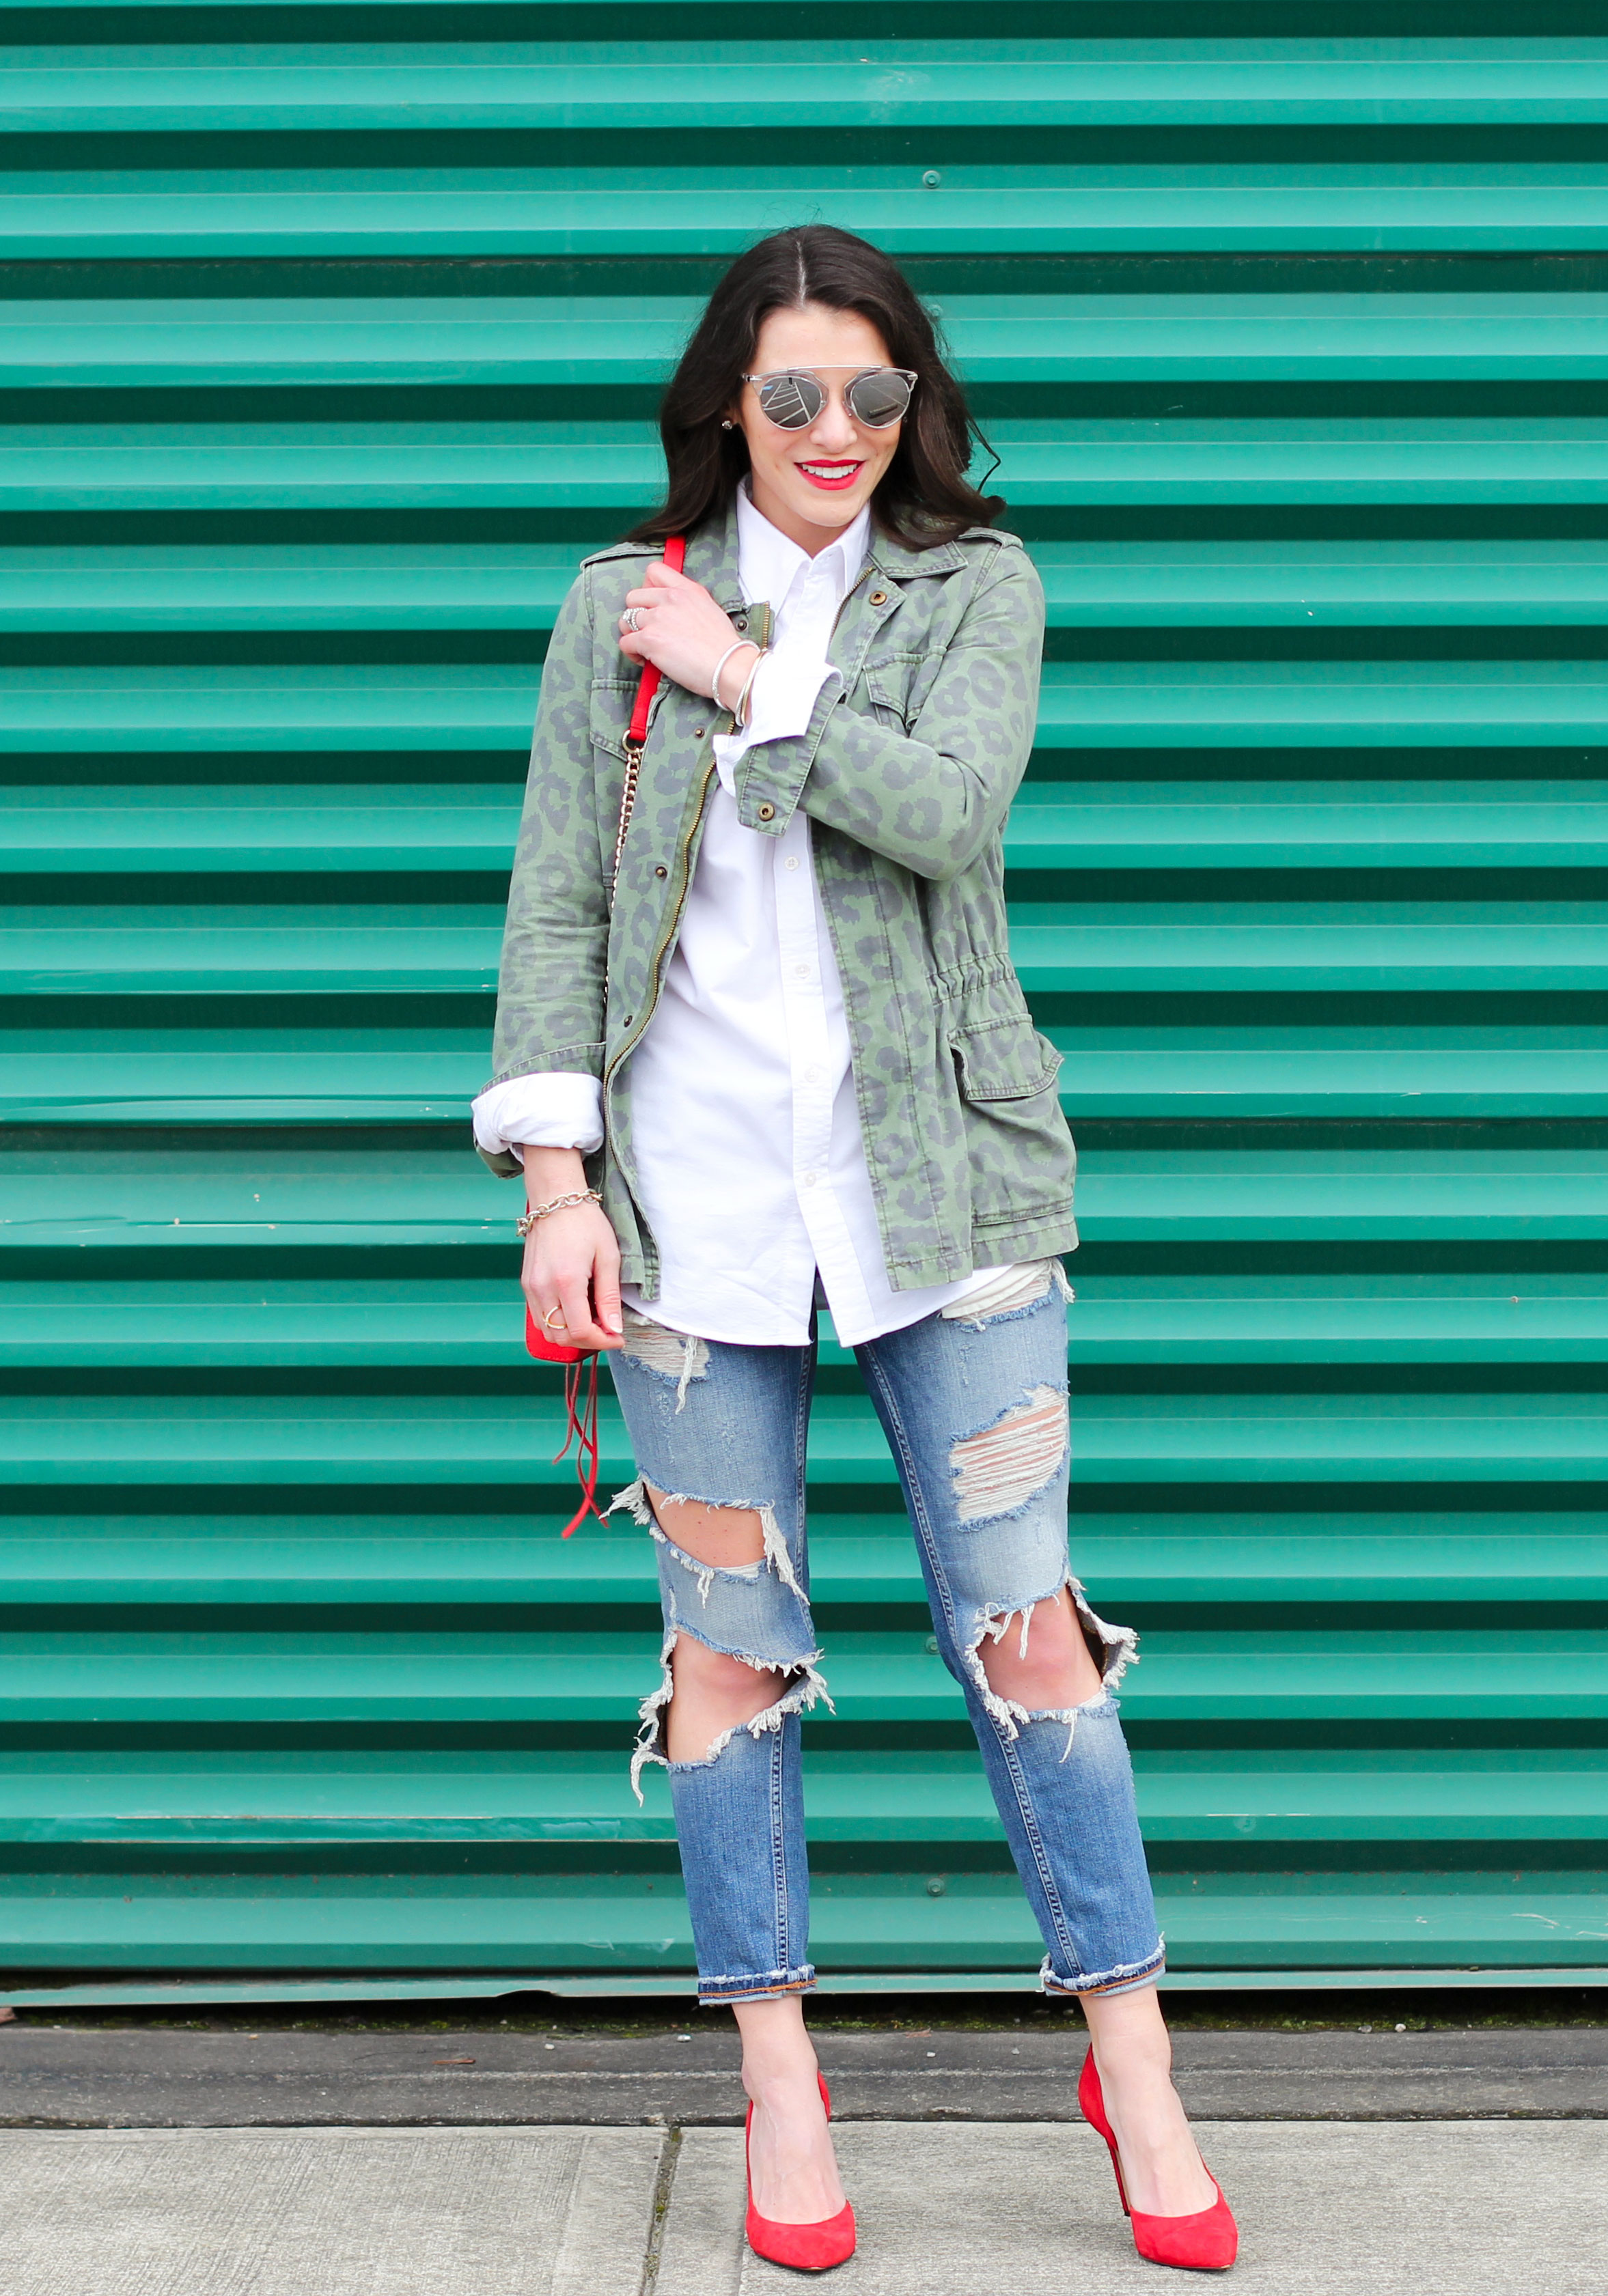 Boyfriend Shirt Outfit, Destroyed Jeans, Red Pumps, Rebecca Minkoff Red Avery Crossbody Bag, Dior Replica Sunglasses, Weekend Style